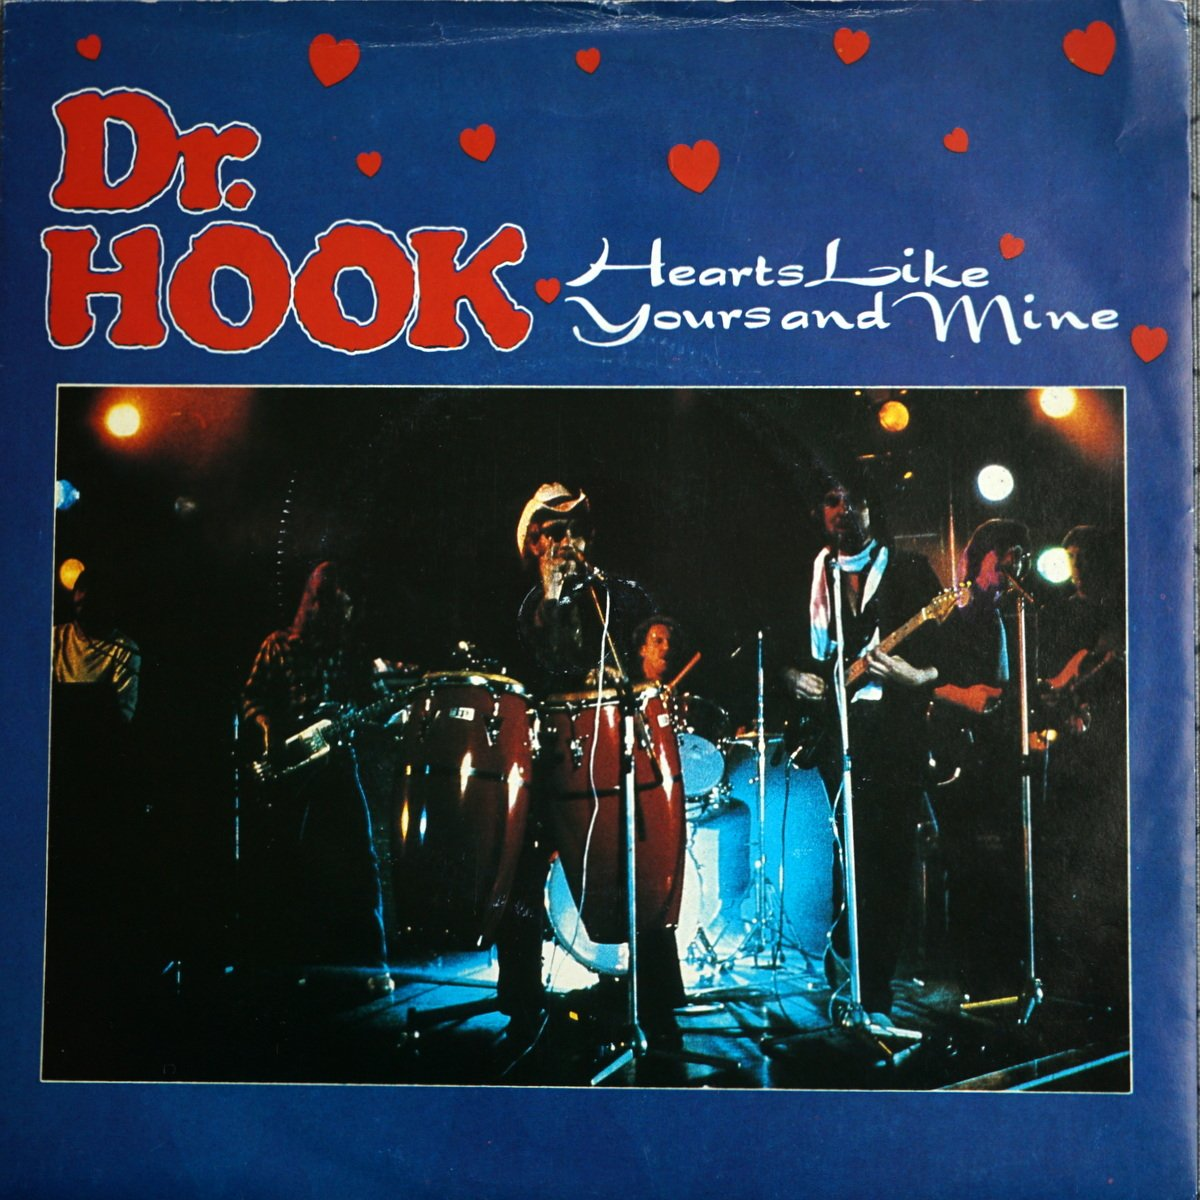 S PD B4 - MER84 - Hearts Like Yours and Mine - 1981 - UK